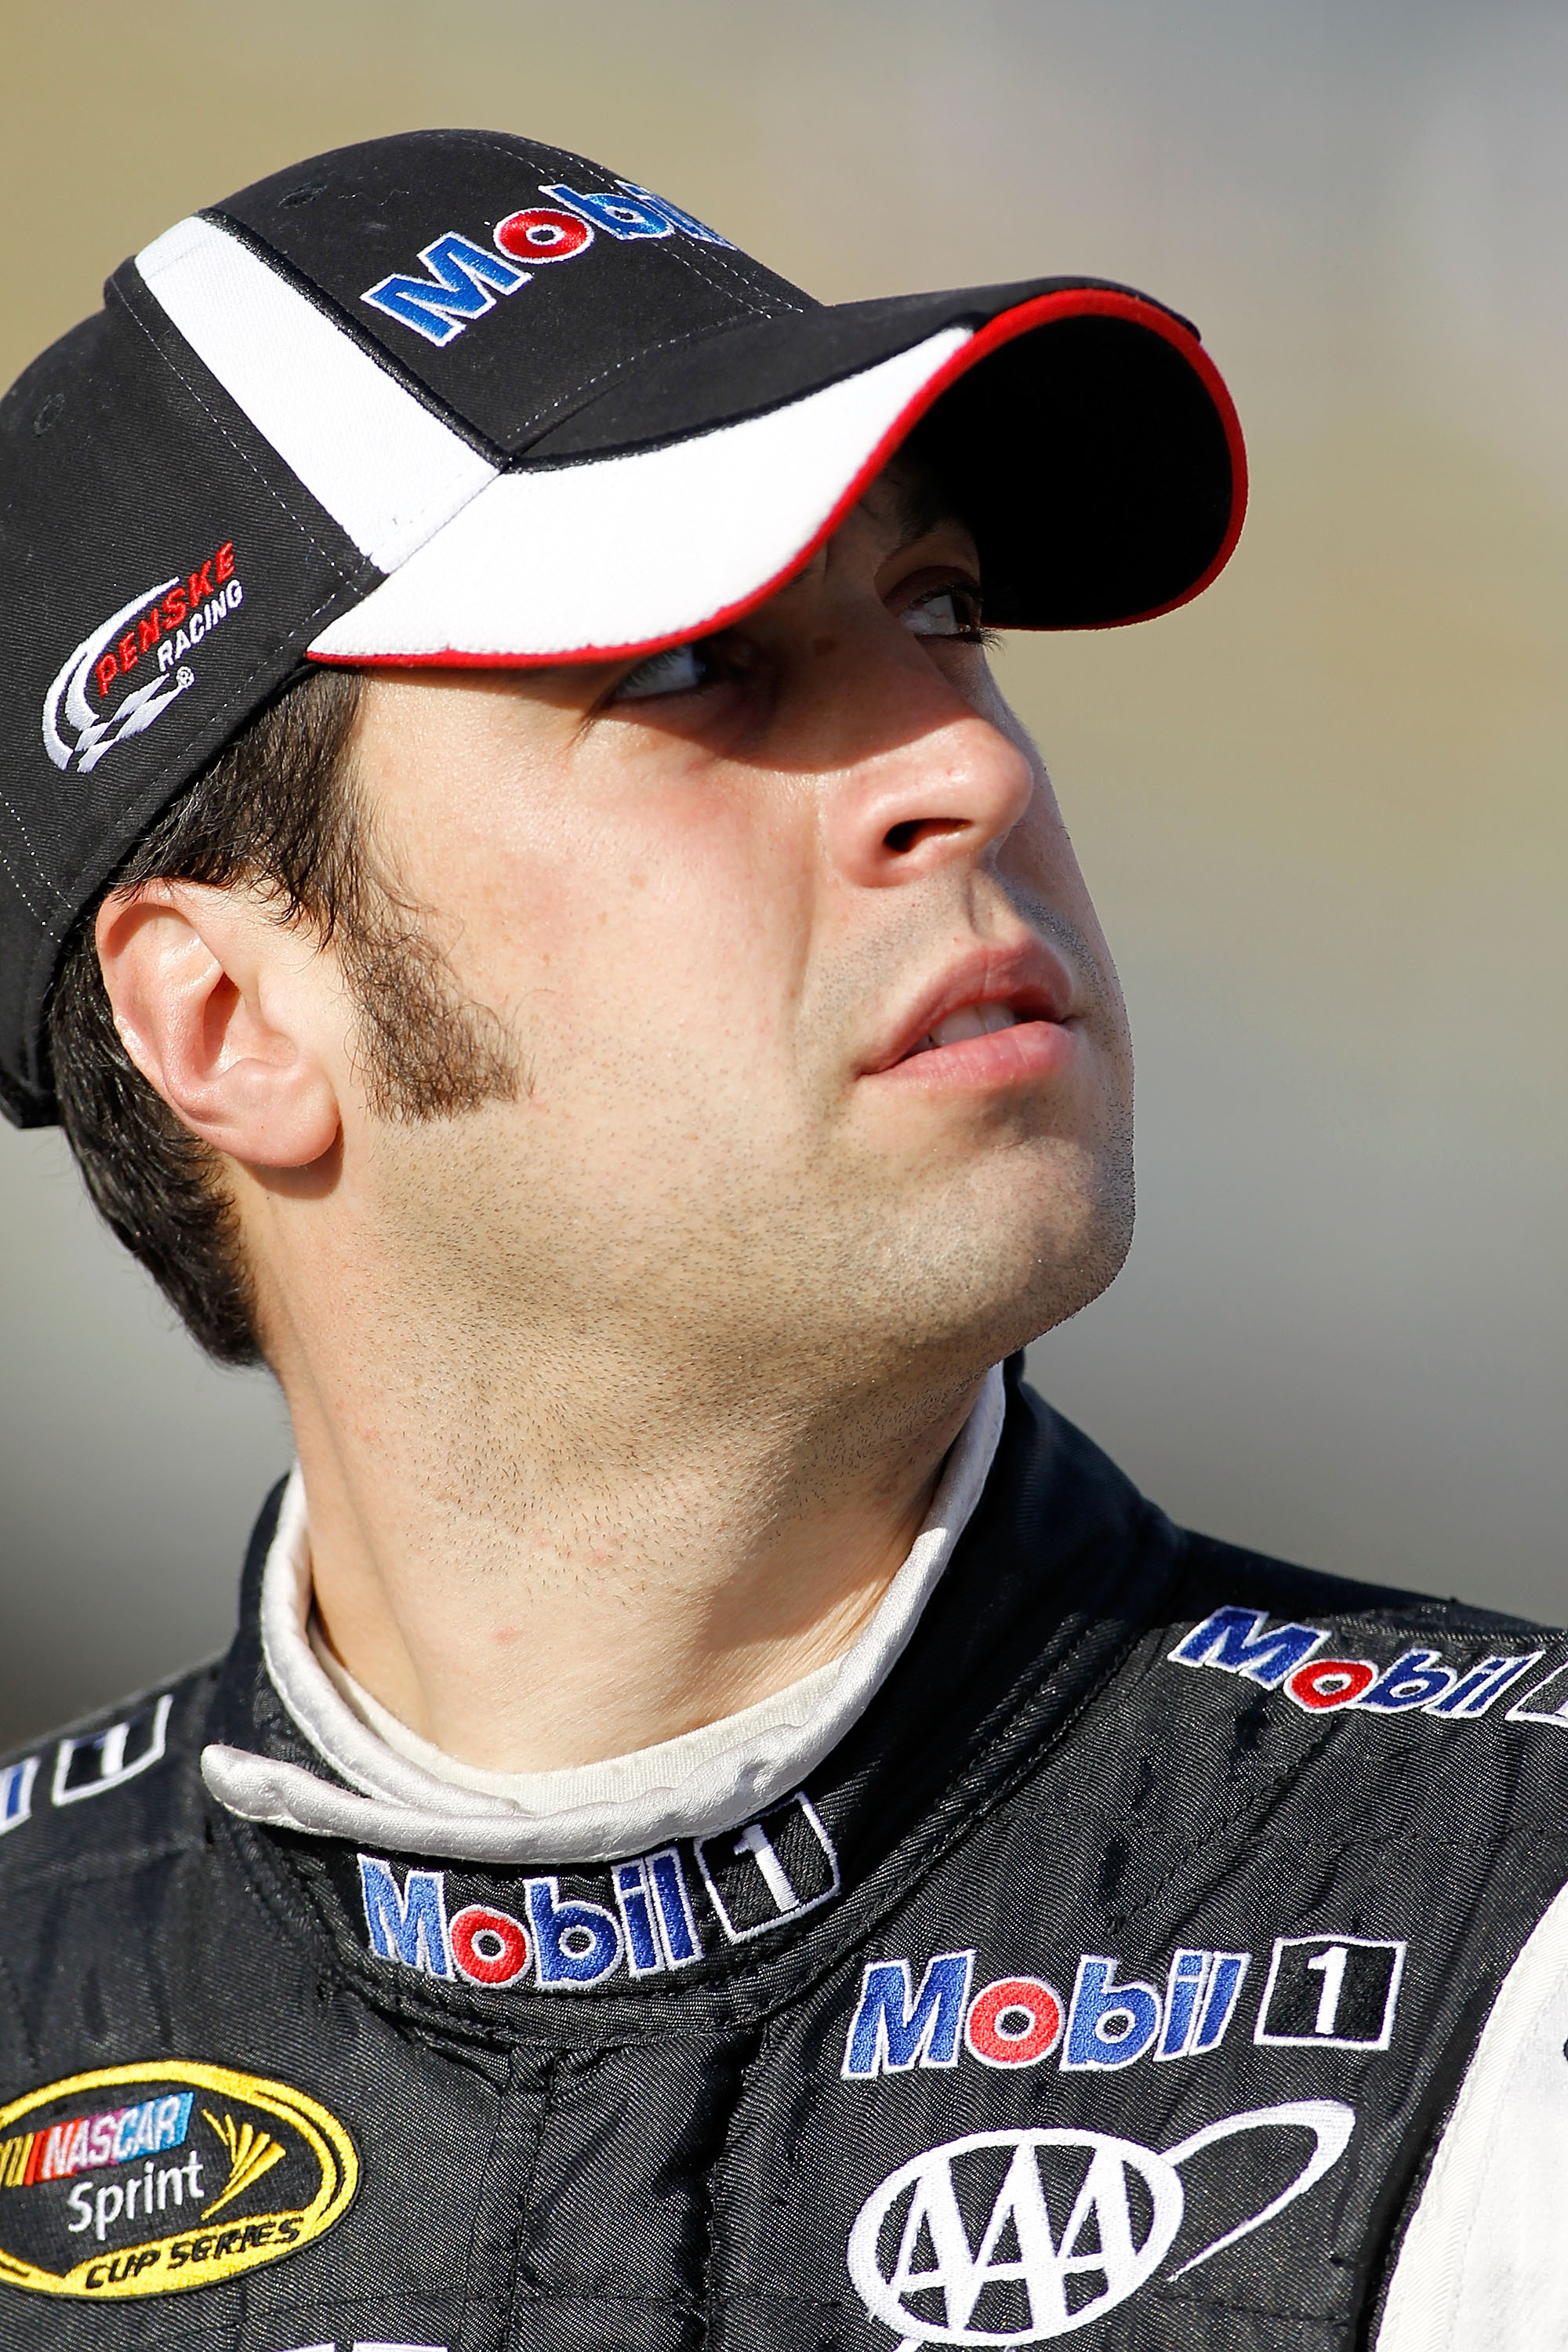 HOMESTEAD, FL - NOVEMBER 19:  Sam Hornish Jr., driver of the #77 Mobil 1 Dodge, stands on pit road during qualifying for the NASCAR Sprint Cup Series Ford 400 at Homestead-Miami Speedway on November 19, 2010 in Homestead, Florida.  (Photo by Todd Warshaw/